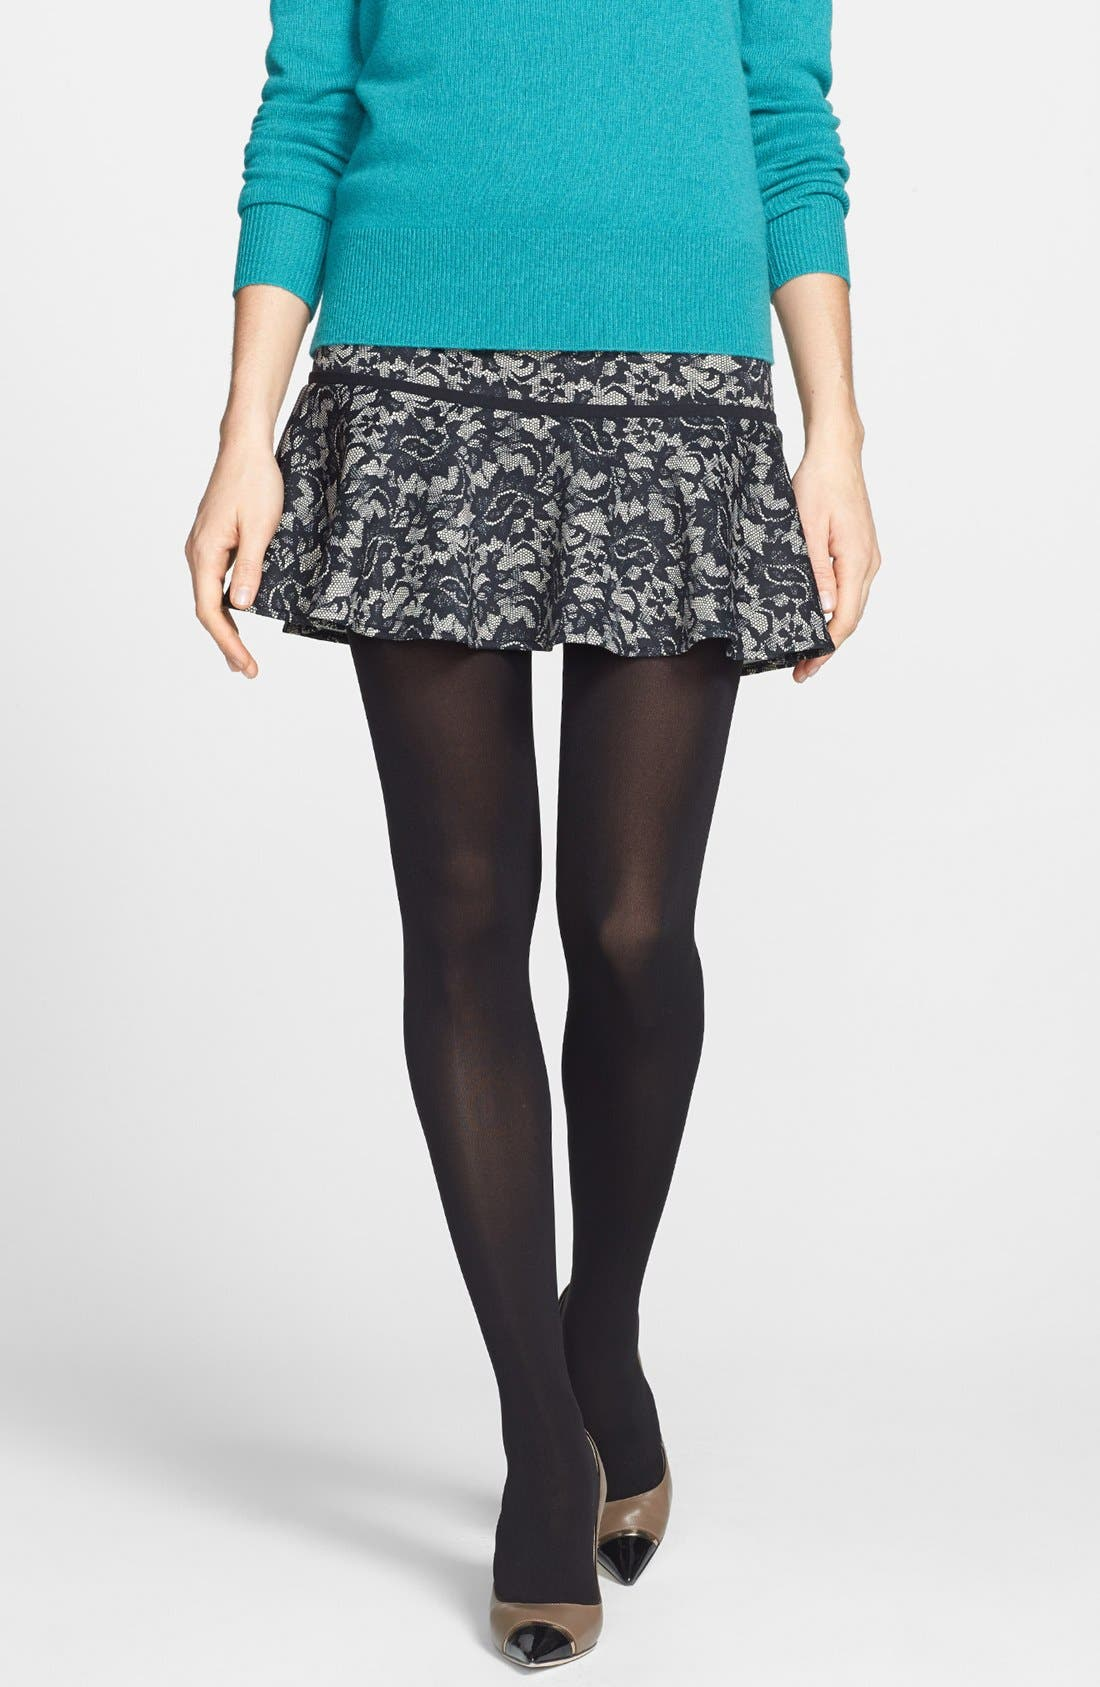 Alternate Image 1 Selected - SPANX® 'Tight End' High Waist Tights (Regular & Plus Size) (Online Only)